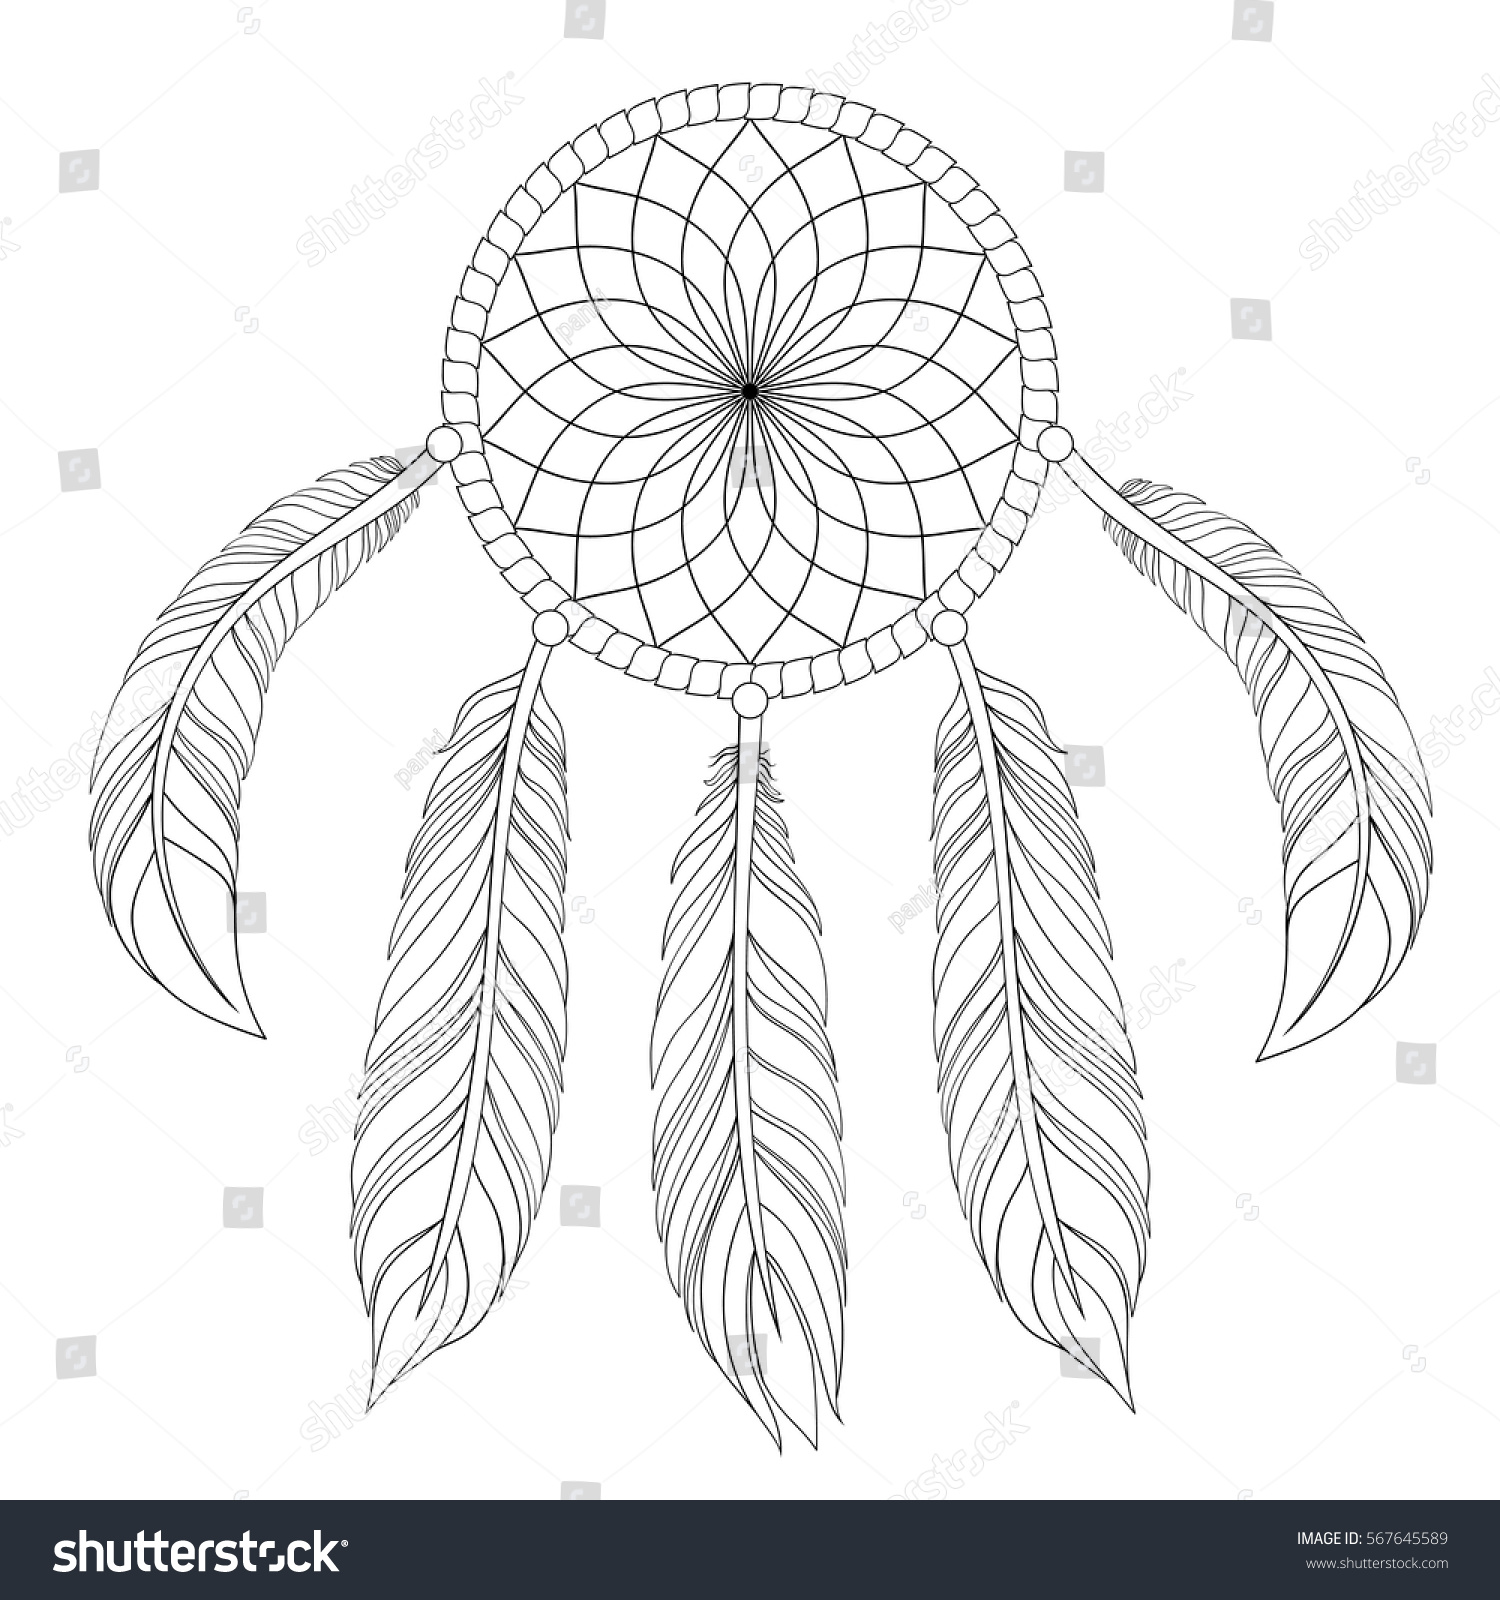 Hand drawn illustration dream catcher zentangle stock vector hand drawn illustration of dream catcher in zentangle graphic style native american symbol for greeting buycottarizona